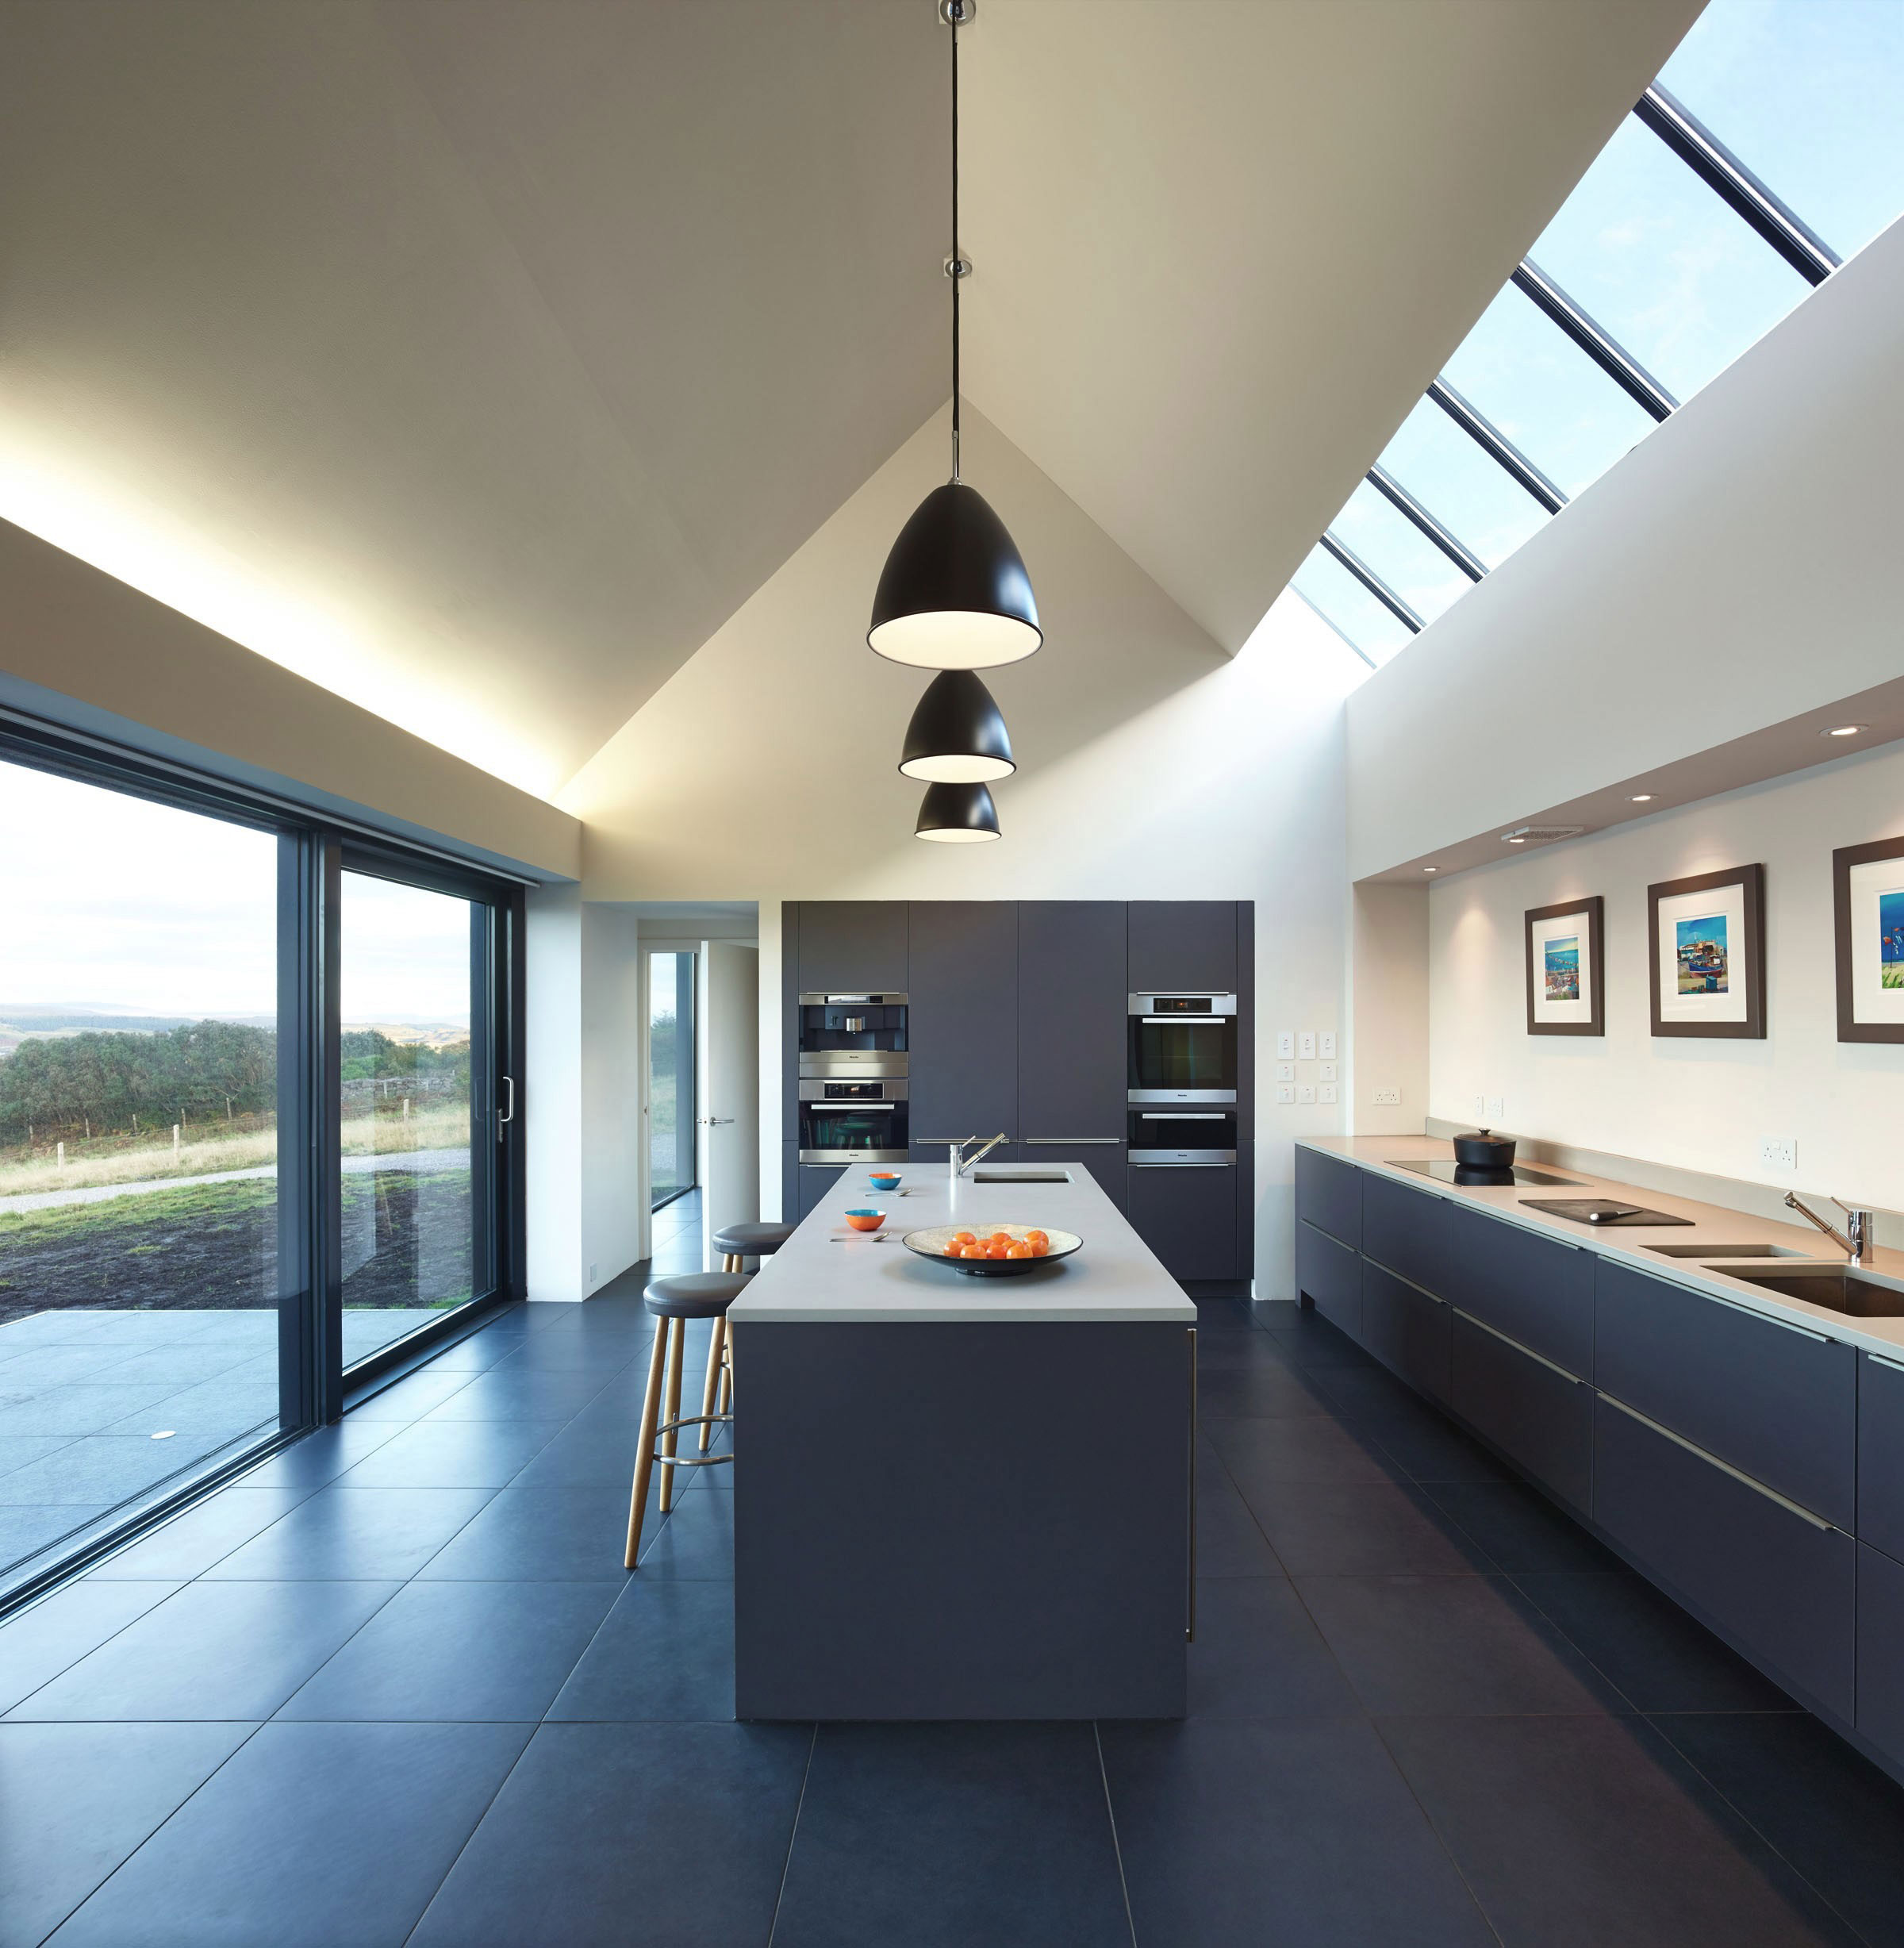 House-in-Colbost-kitchen